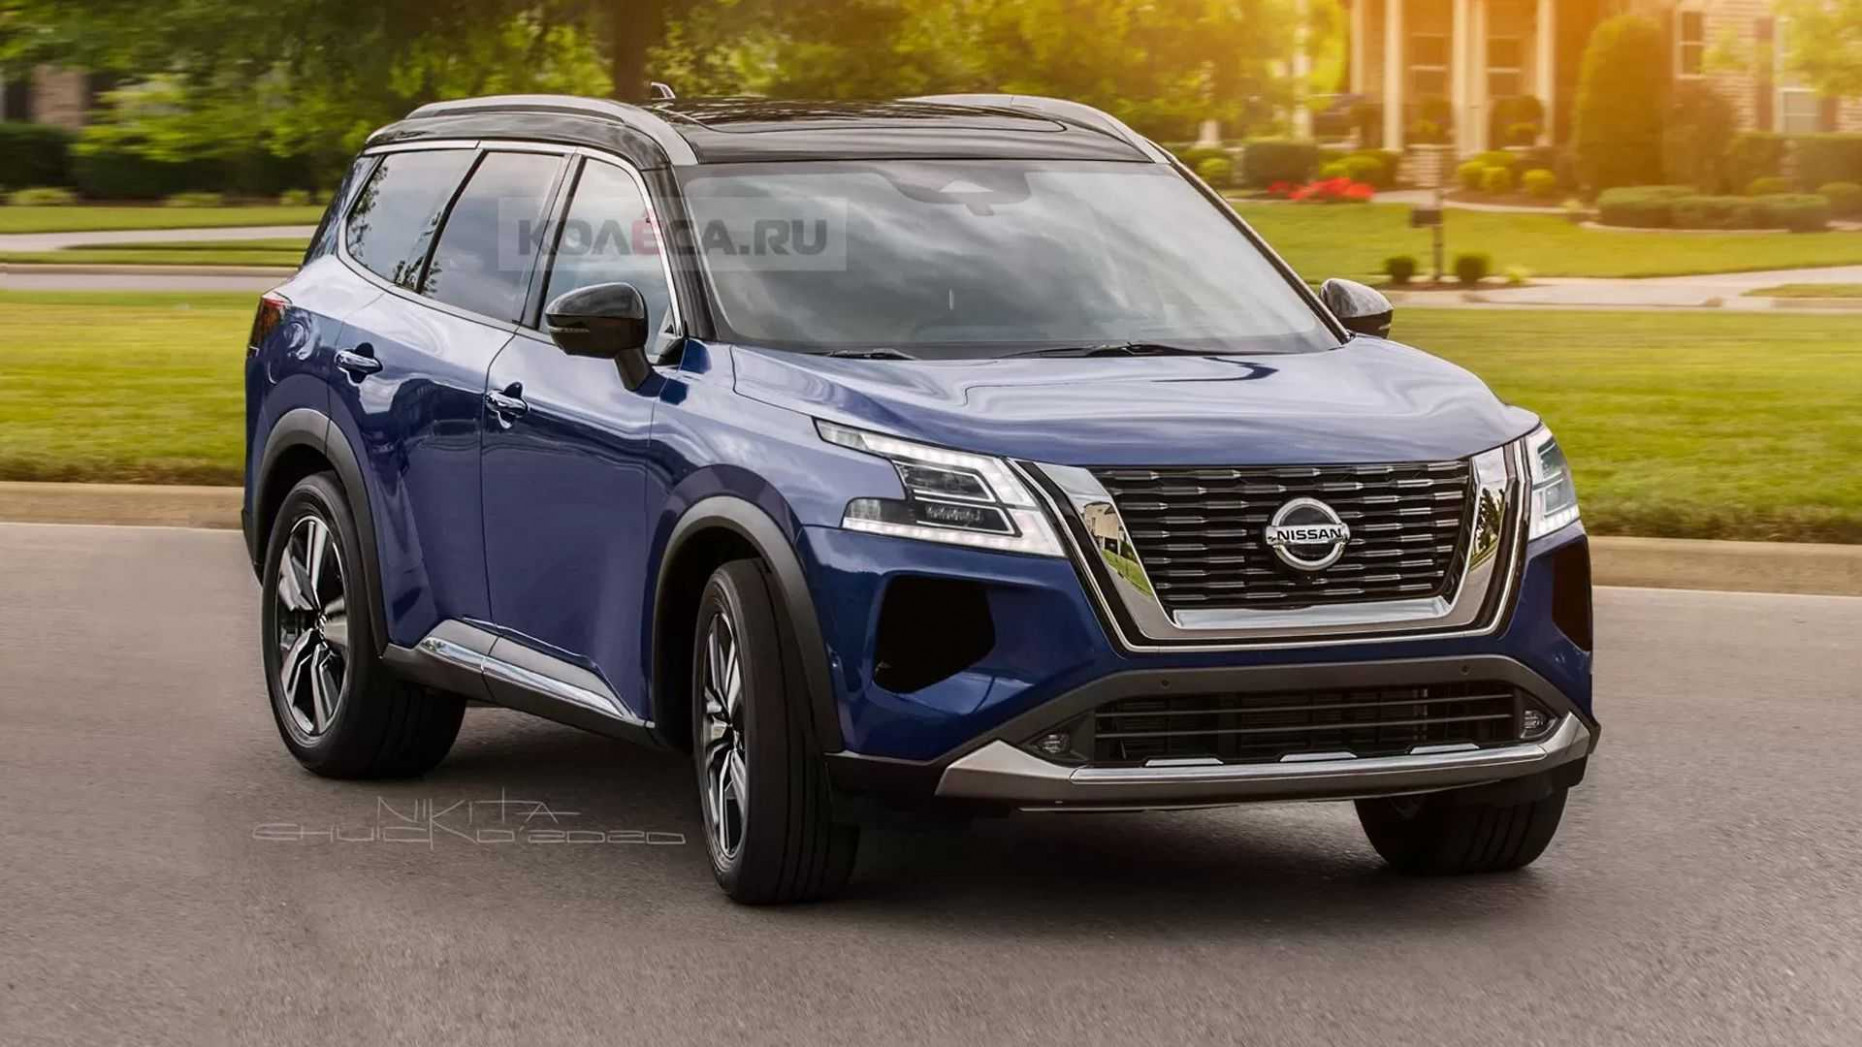 Redesign and Concept 2022 Nissan Armada